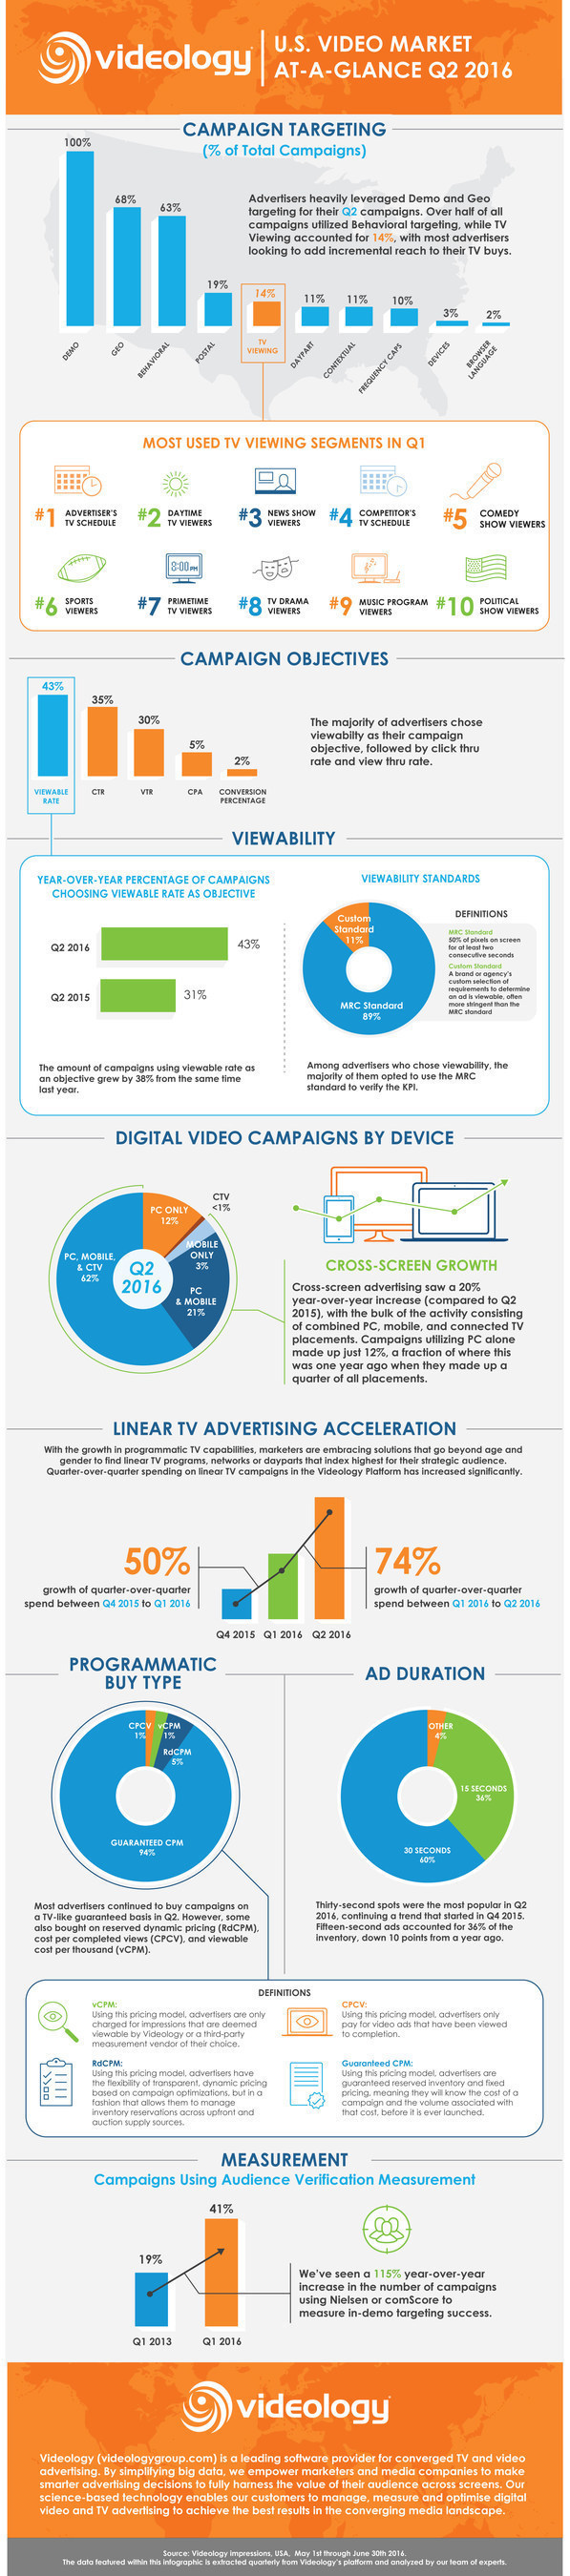 Videology's Q2 U.S. Video Market At-A-Glance Report